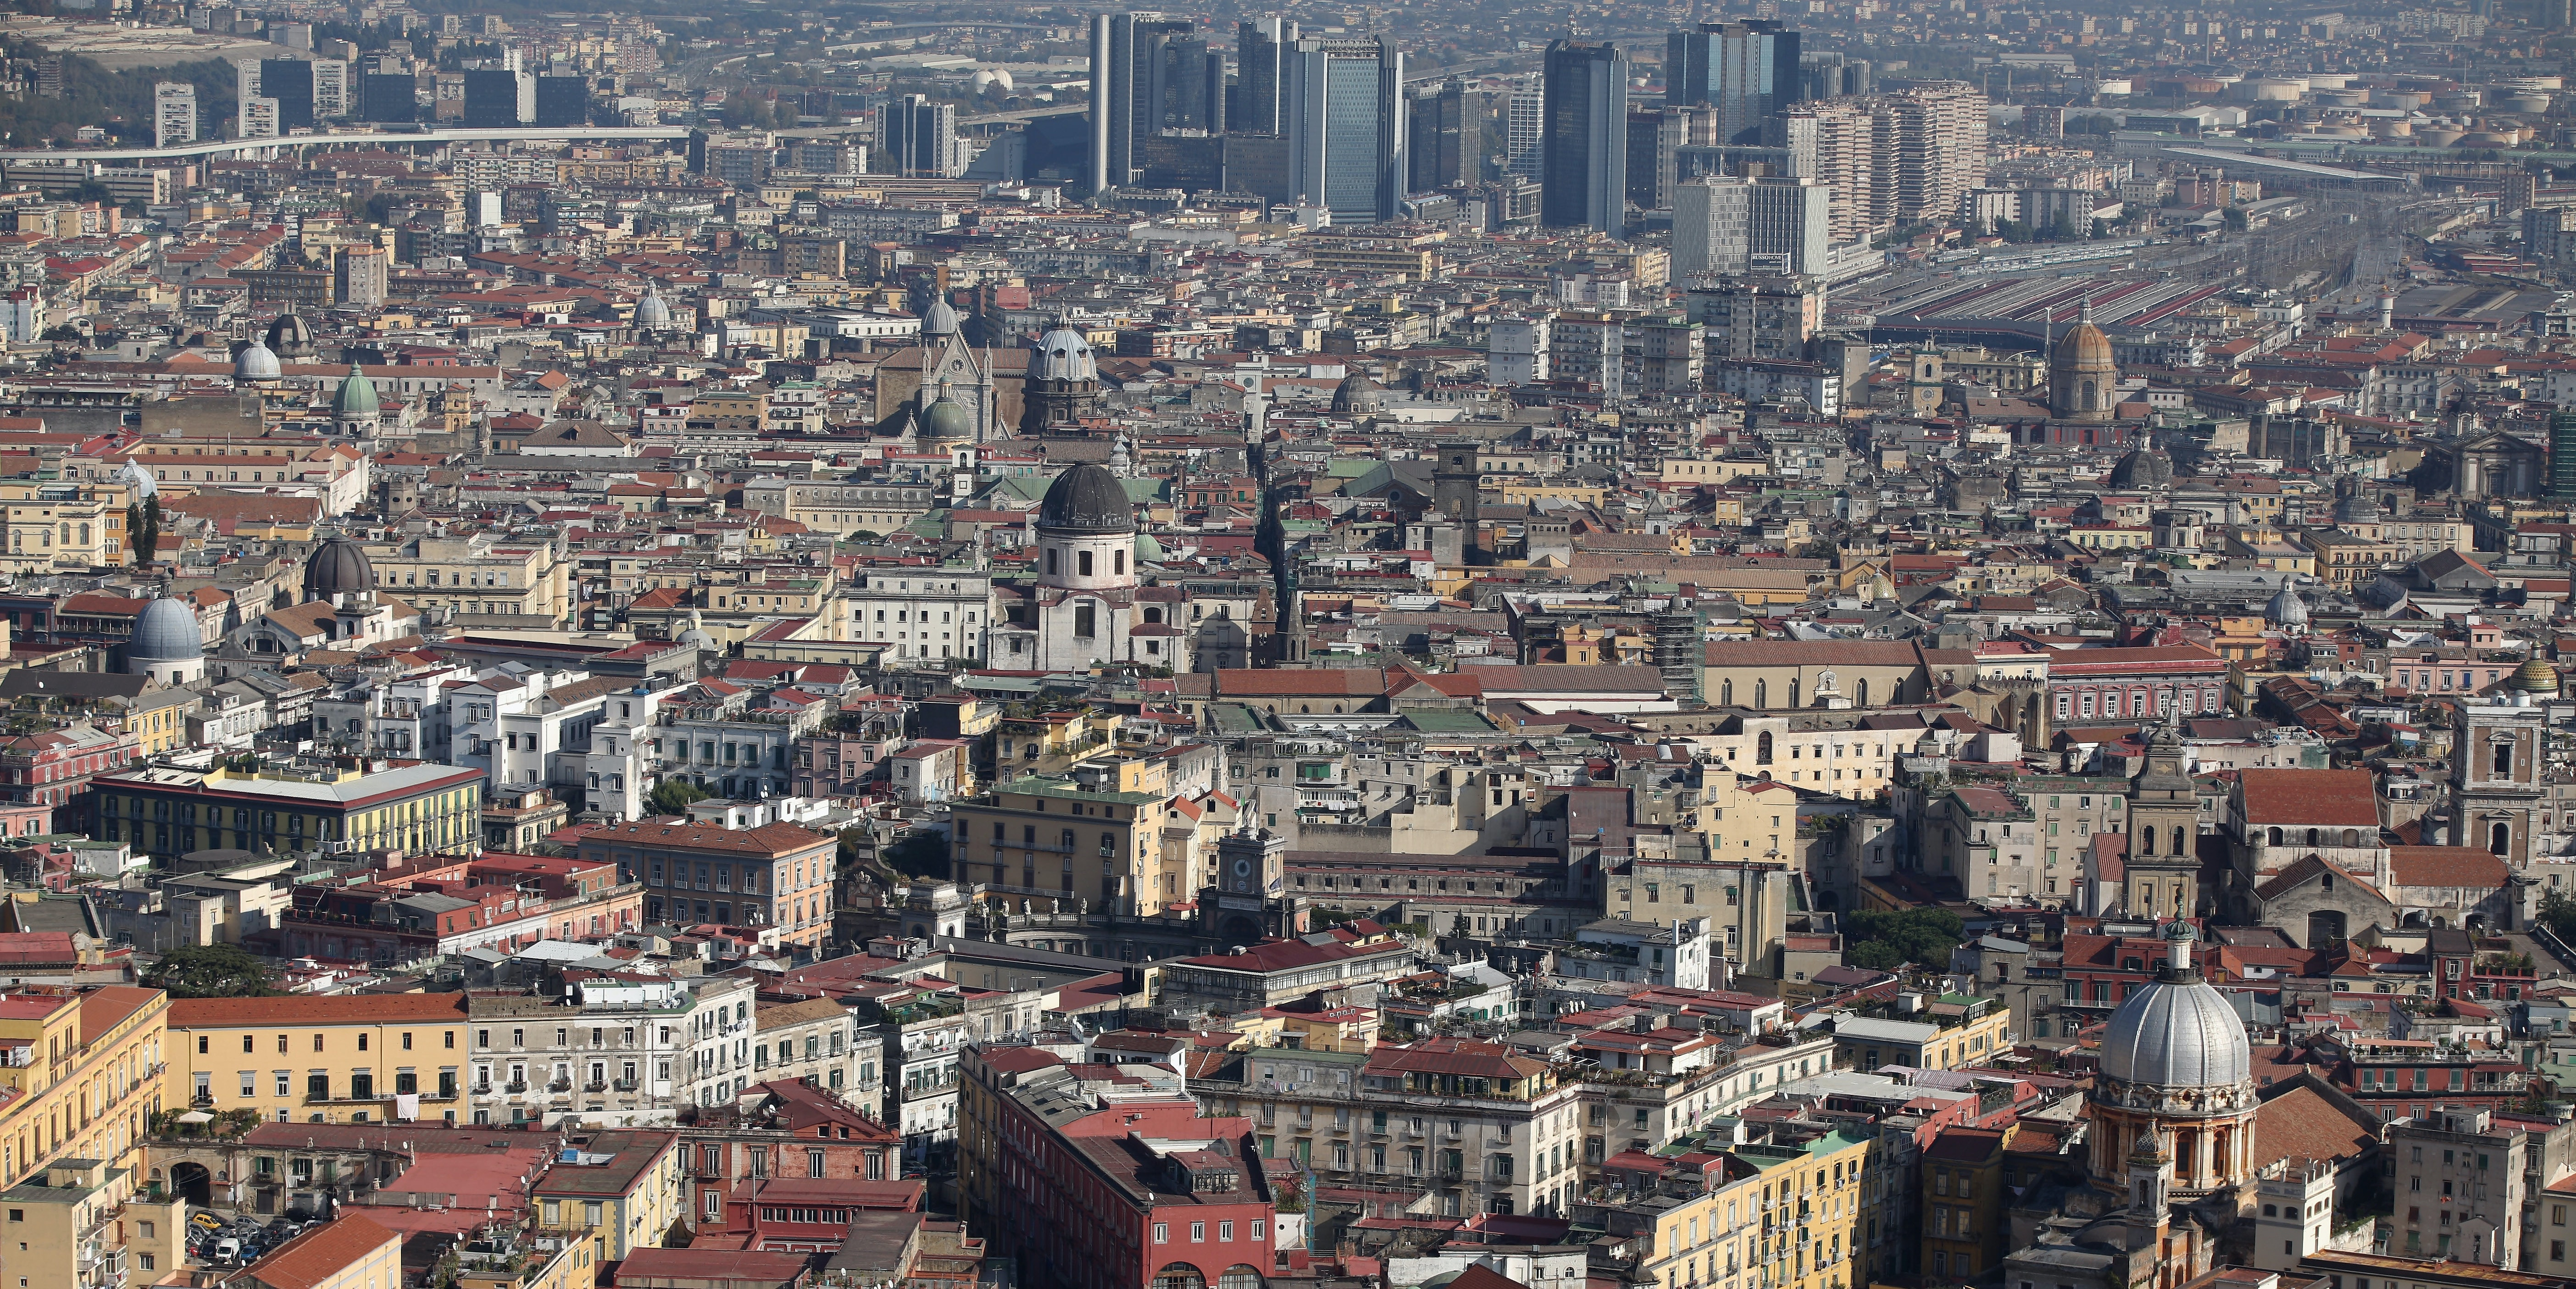 The densely populated city of Naples, Italy.